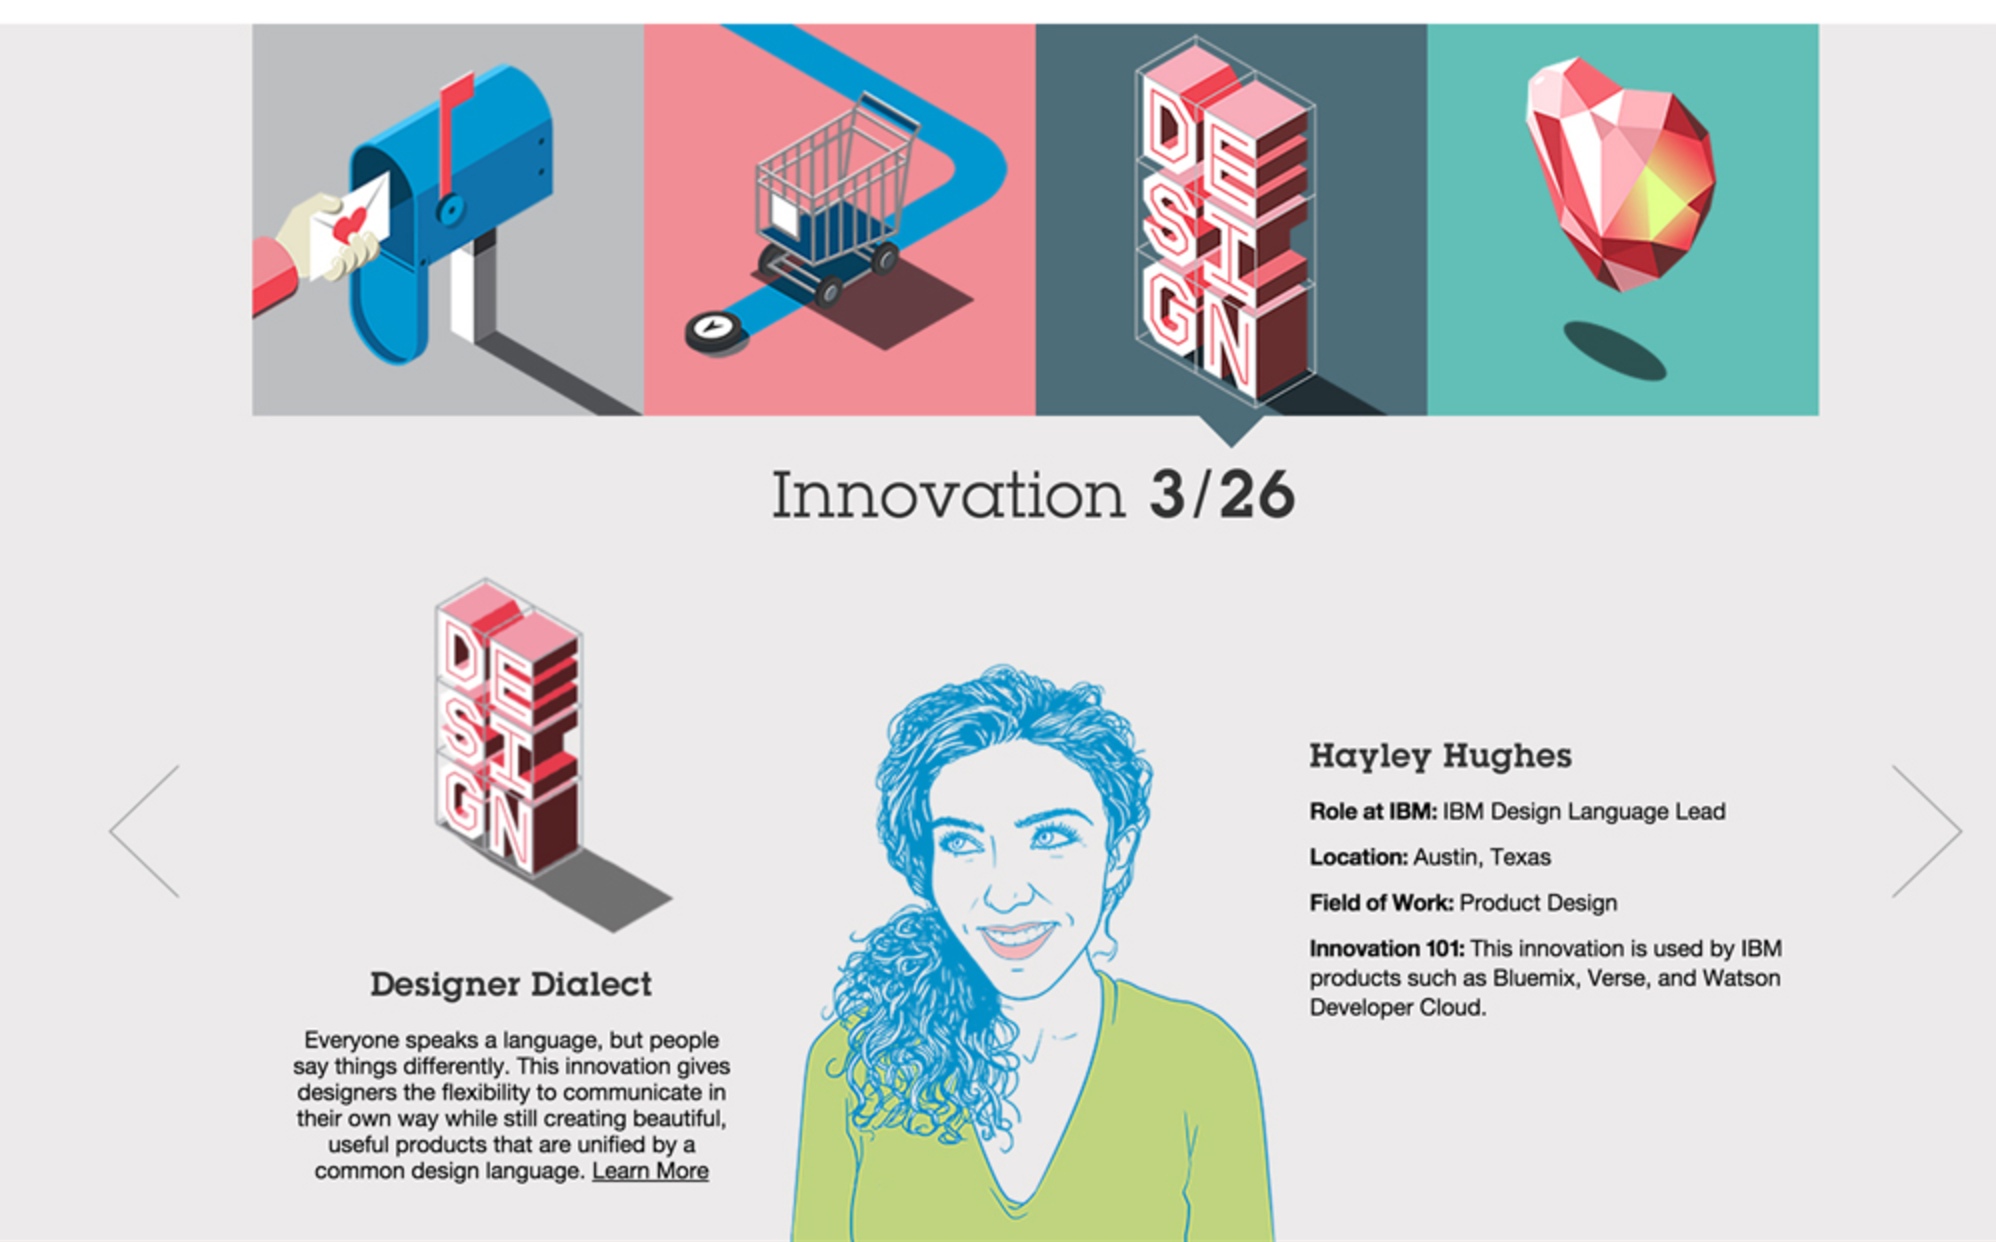 This project was featured in  Innovation 26X26 , which showcases amazing patents, solutions and ideas by 26 talented women at IBM across the world.